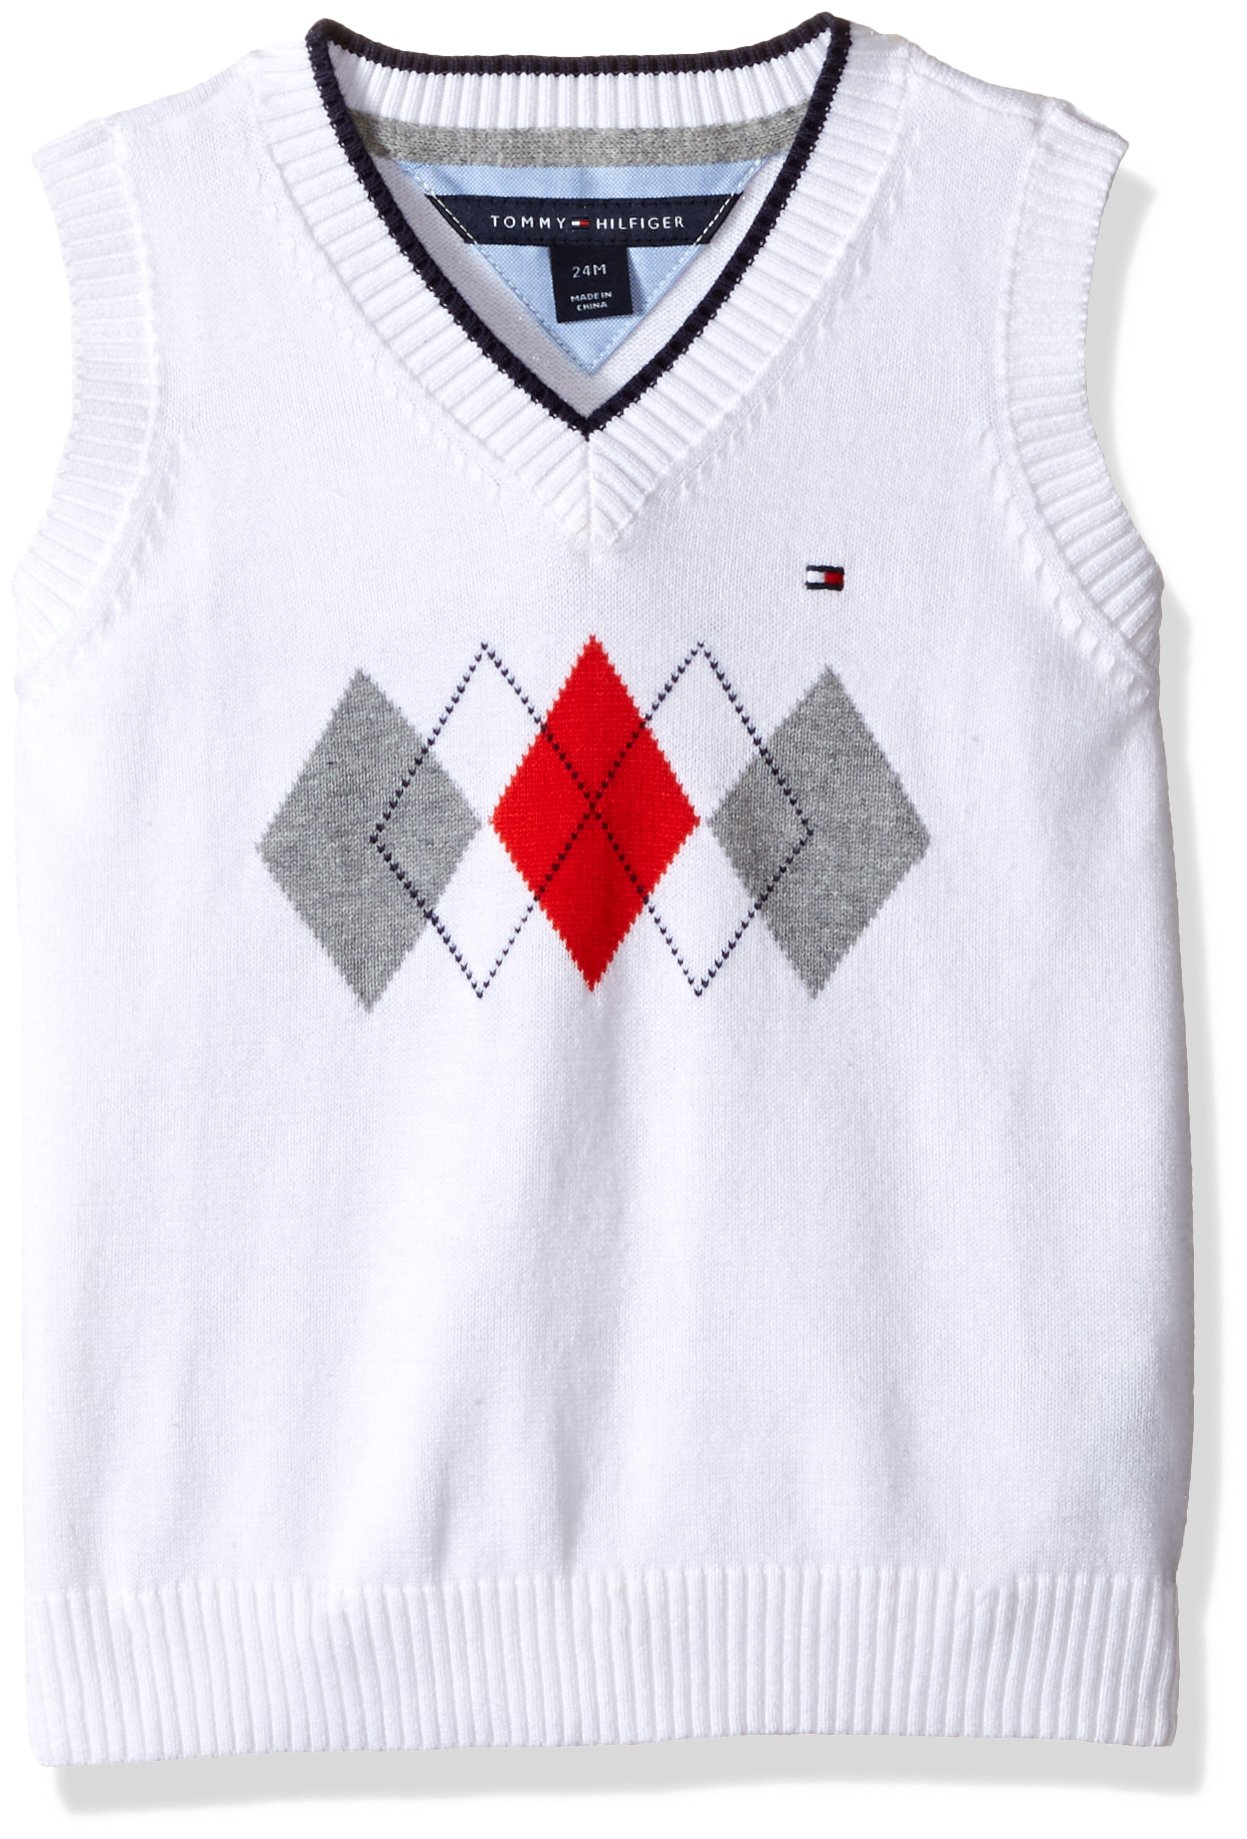 Tommy Hilfiger Baby Boys' Henry Sweater Vest, White, 18 Months